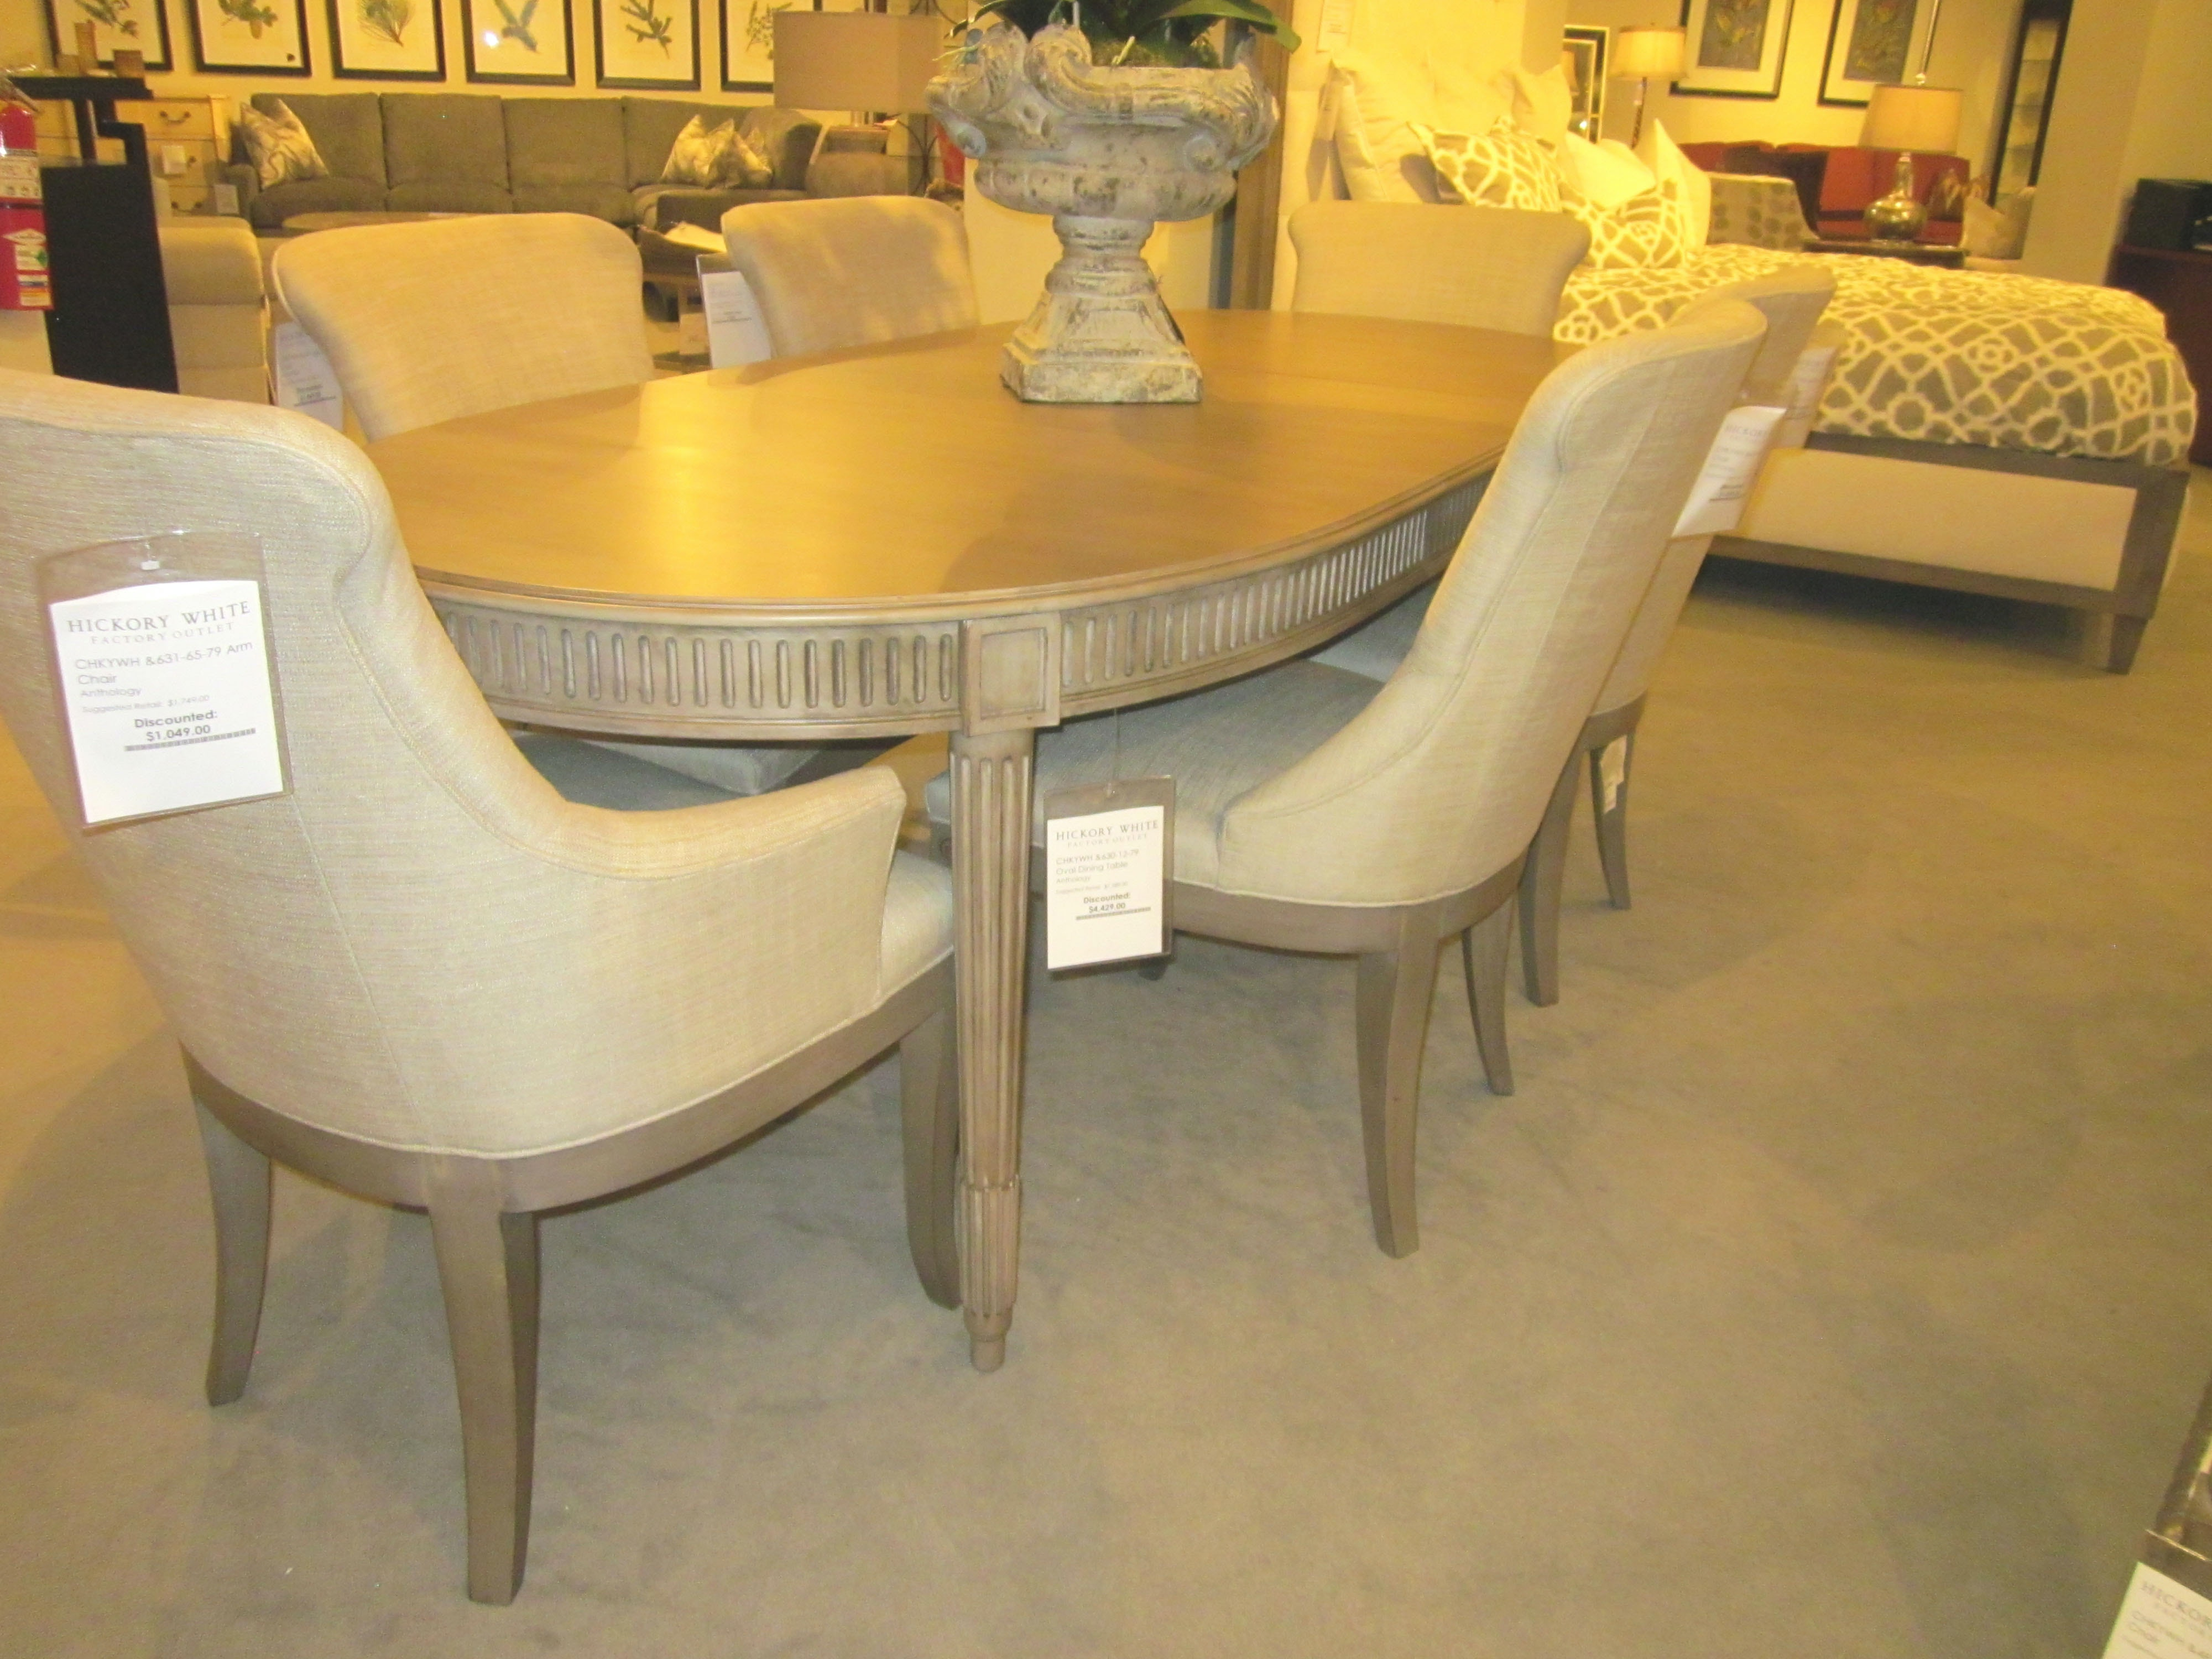 Hickory White Furniture 7 Piece Dining Set Anthology Dining Group,  Anthology Oval Dining Table